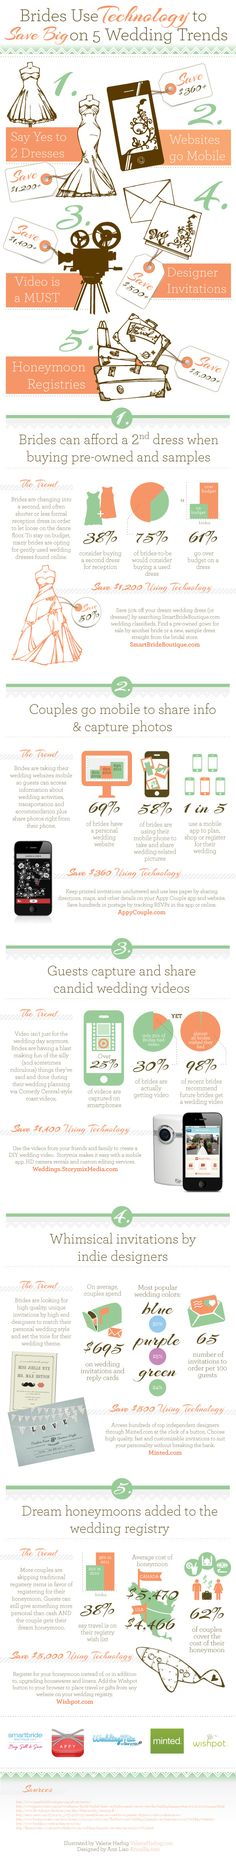 This may be a wedding saver! Wedding Infographic: How to Save Money on Your Wedding Using Technology    Including: Dress, Wedding Website, Invitations, Honeymoon and Video